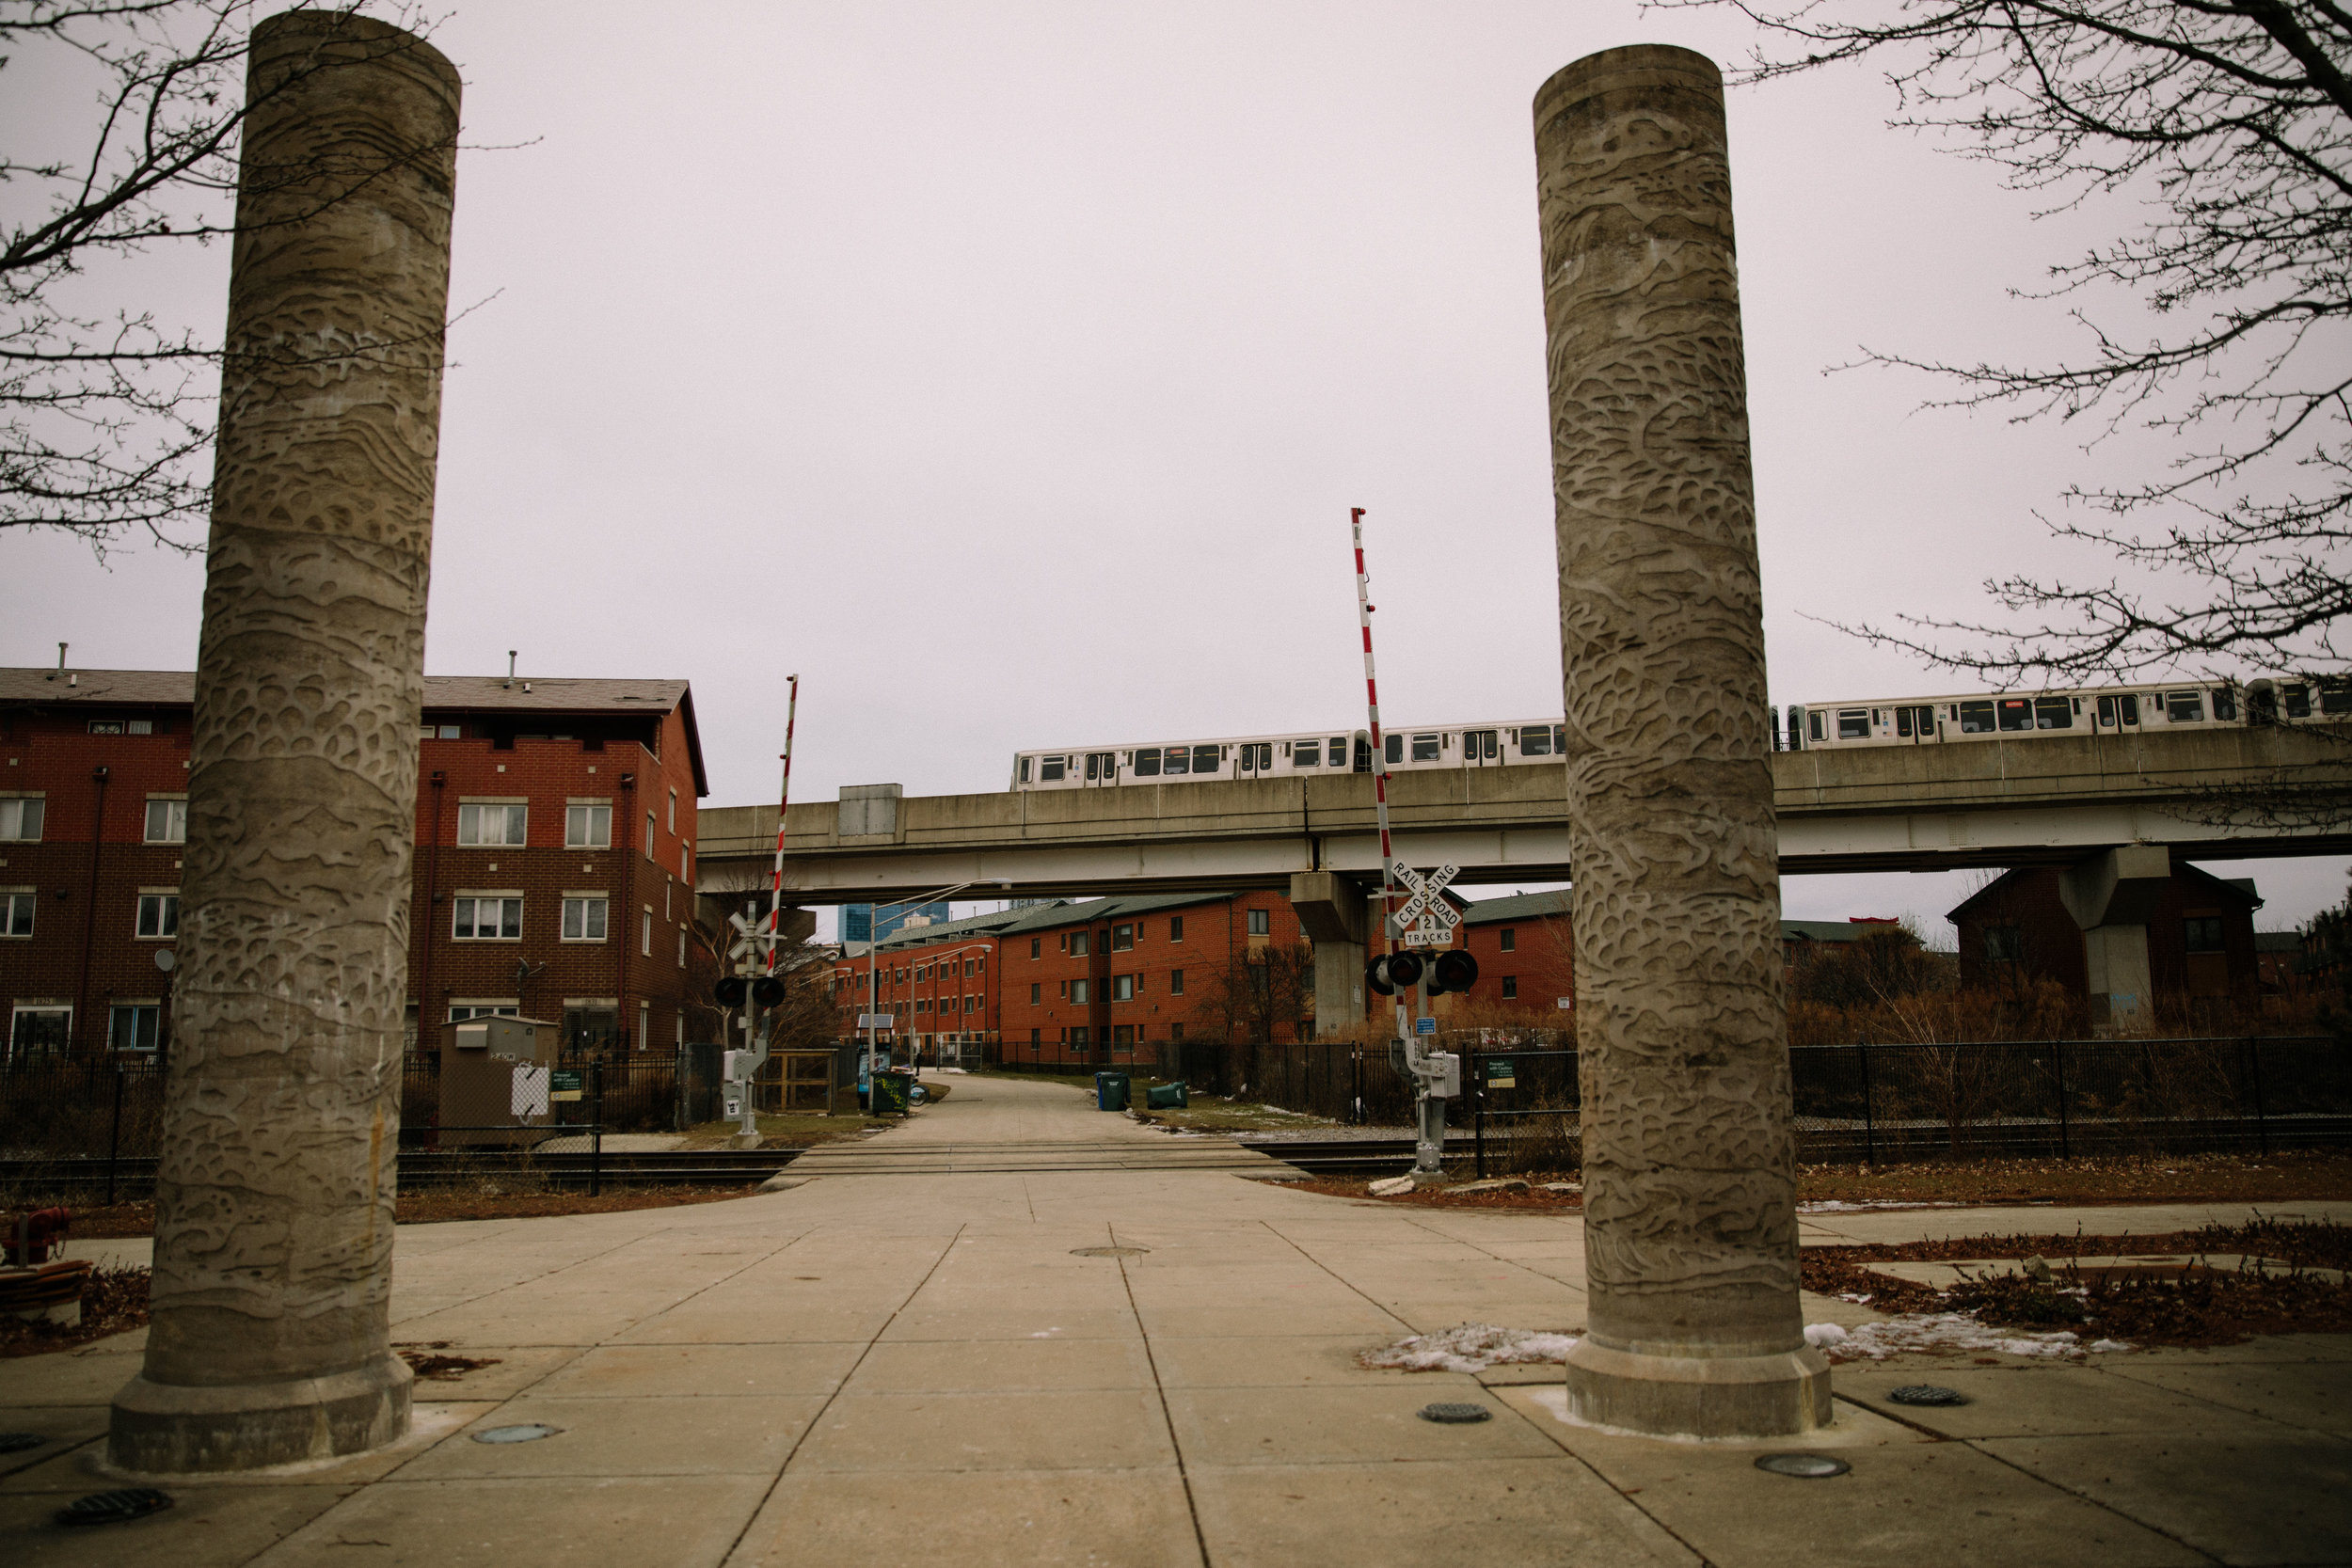 A train moves along the El (elevated line) running through Ping Tom park in Chicago. Chicago is home to MCC partner organization, Parents for Peace and Justice, a support and advocacy organization for families who have lost kids to gun violence in Chicago.